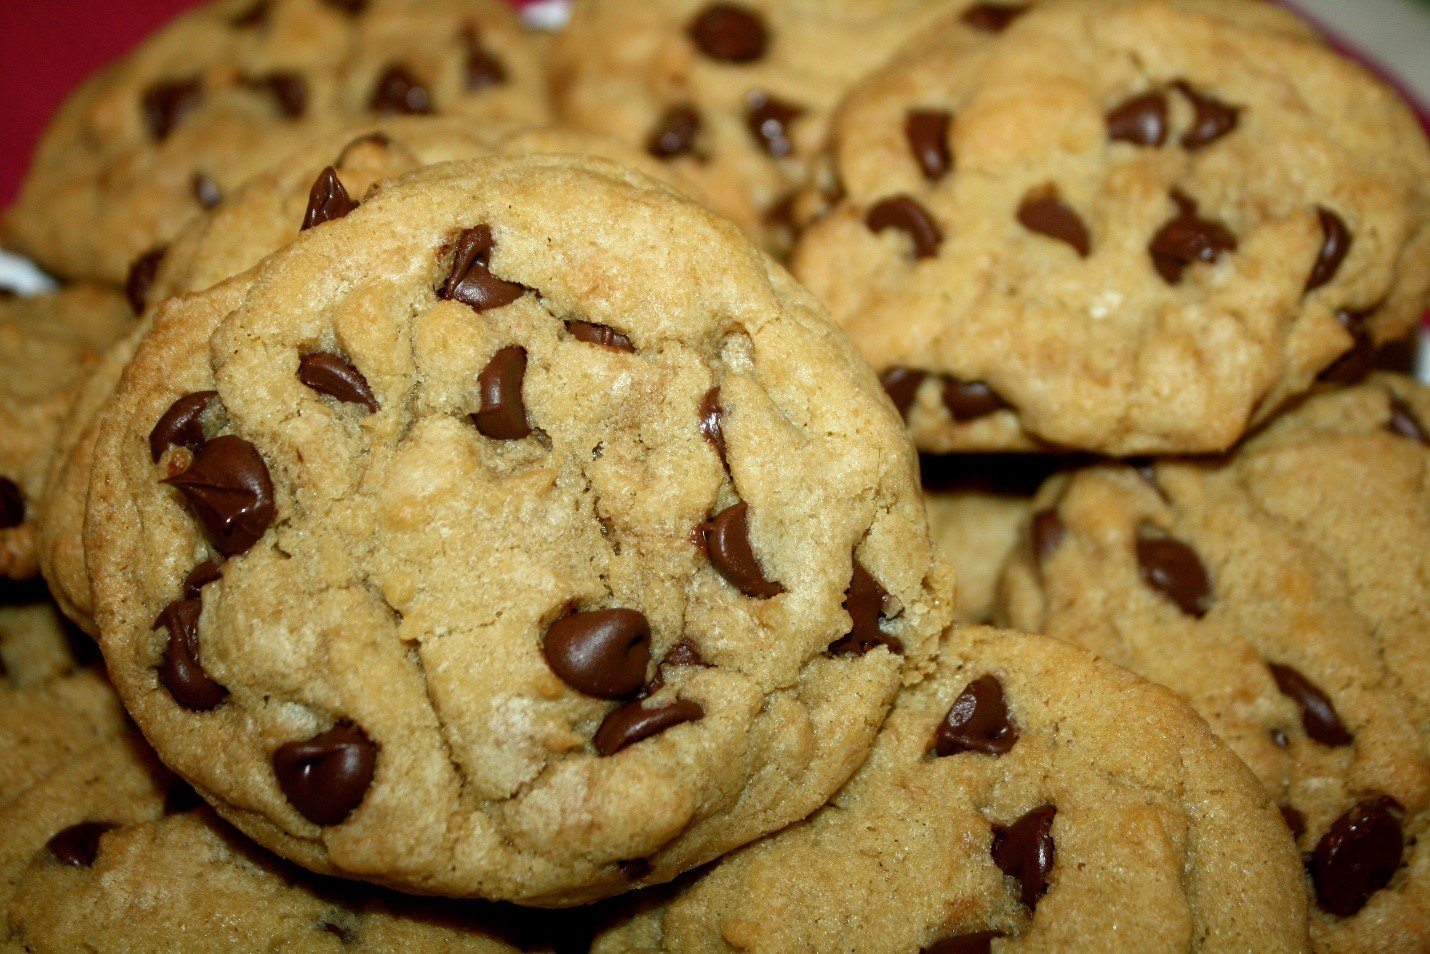 Keto Chocolate Chip Cookie Recipes